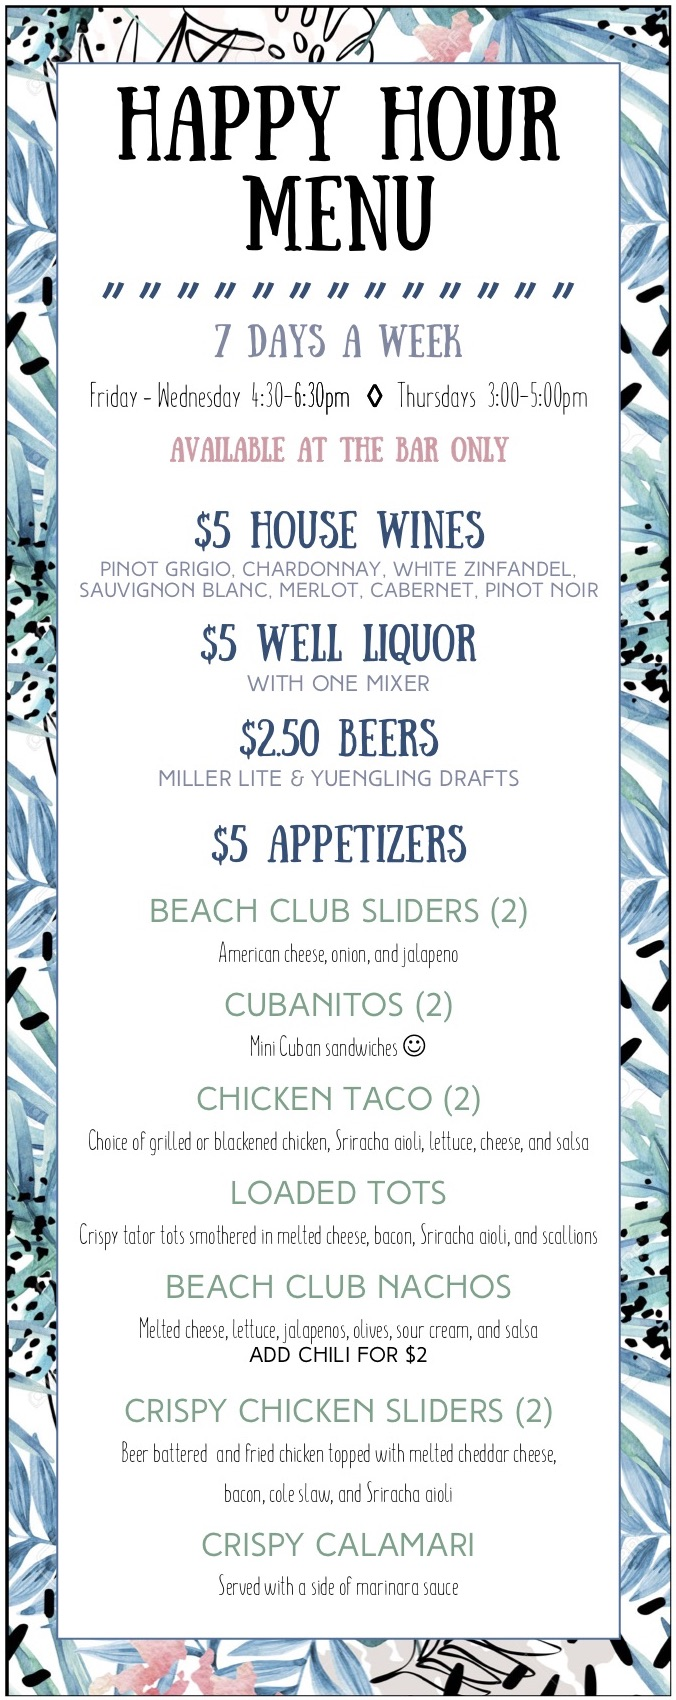 2019 Happy Hour Menu